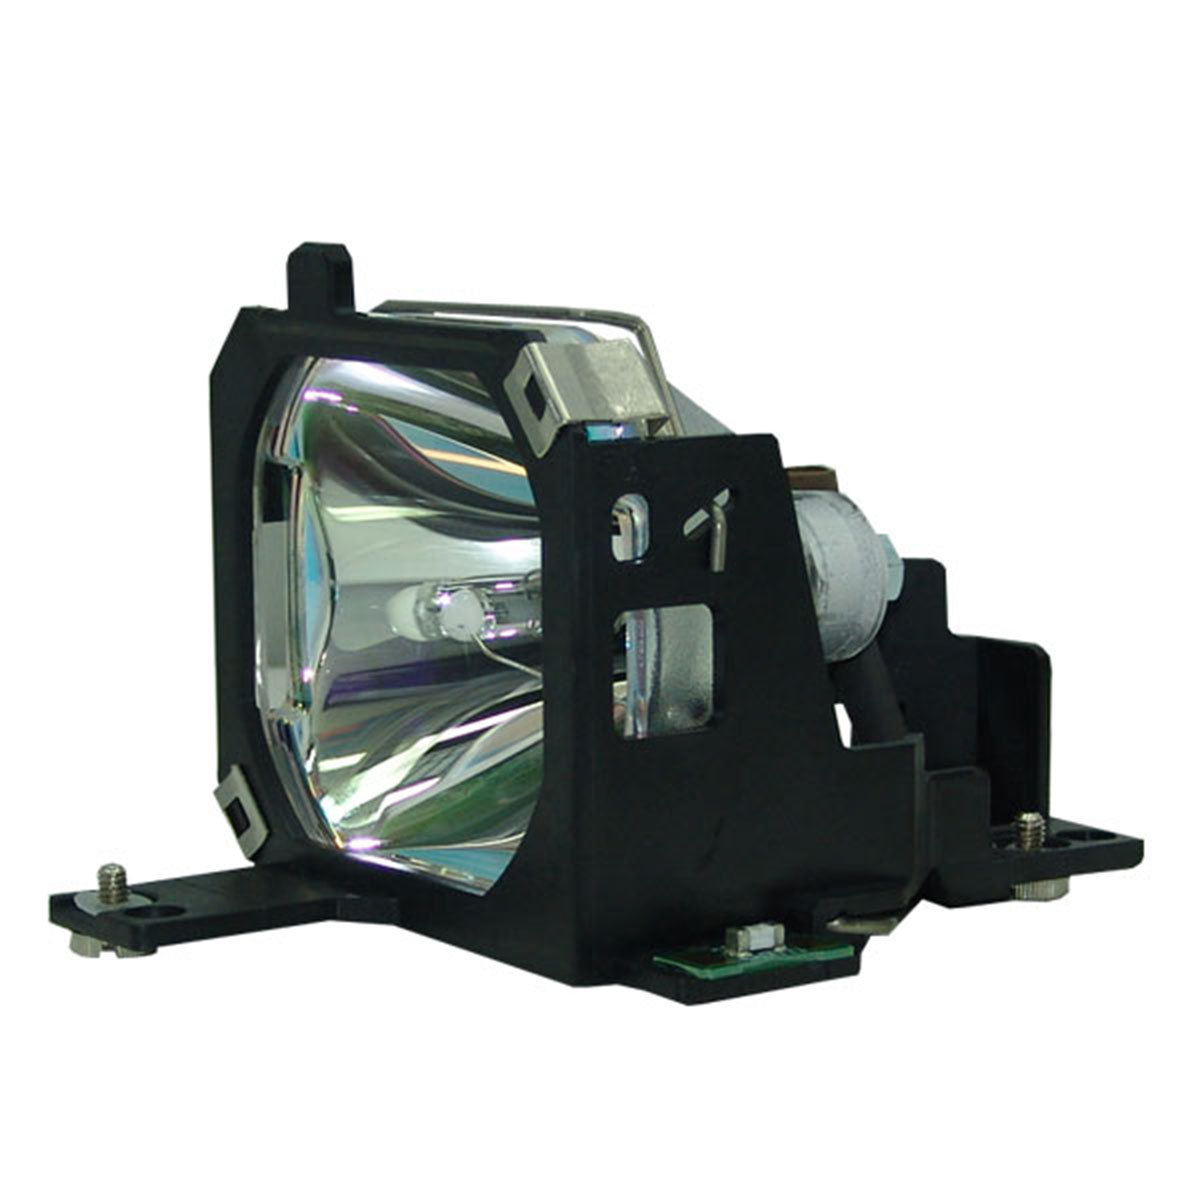 Lamp Housing For JVC LX-D3000Z / LXD3000Z Projector DLP LCD Bulb